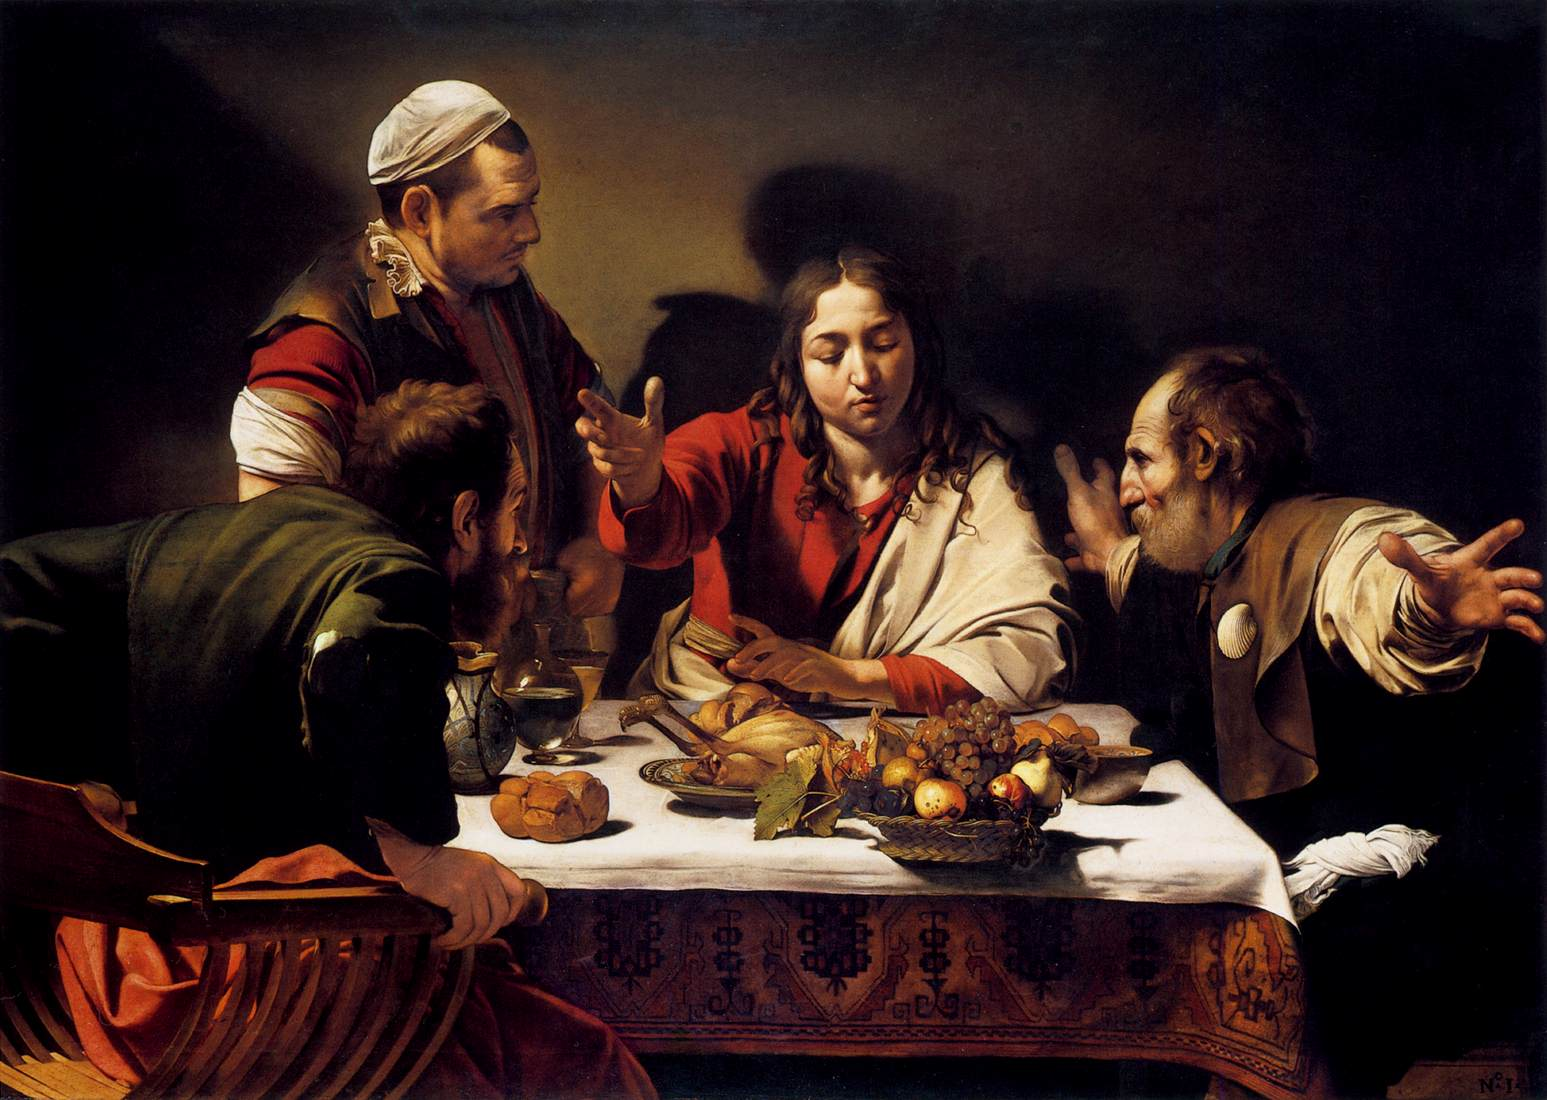 an analysis of the symbolism of blood and its use in the story of caravaggio